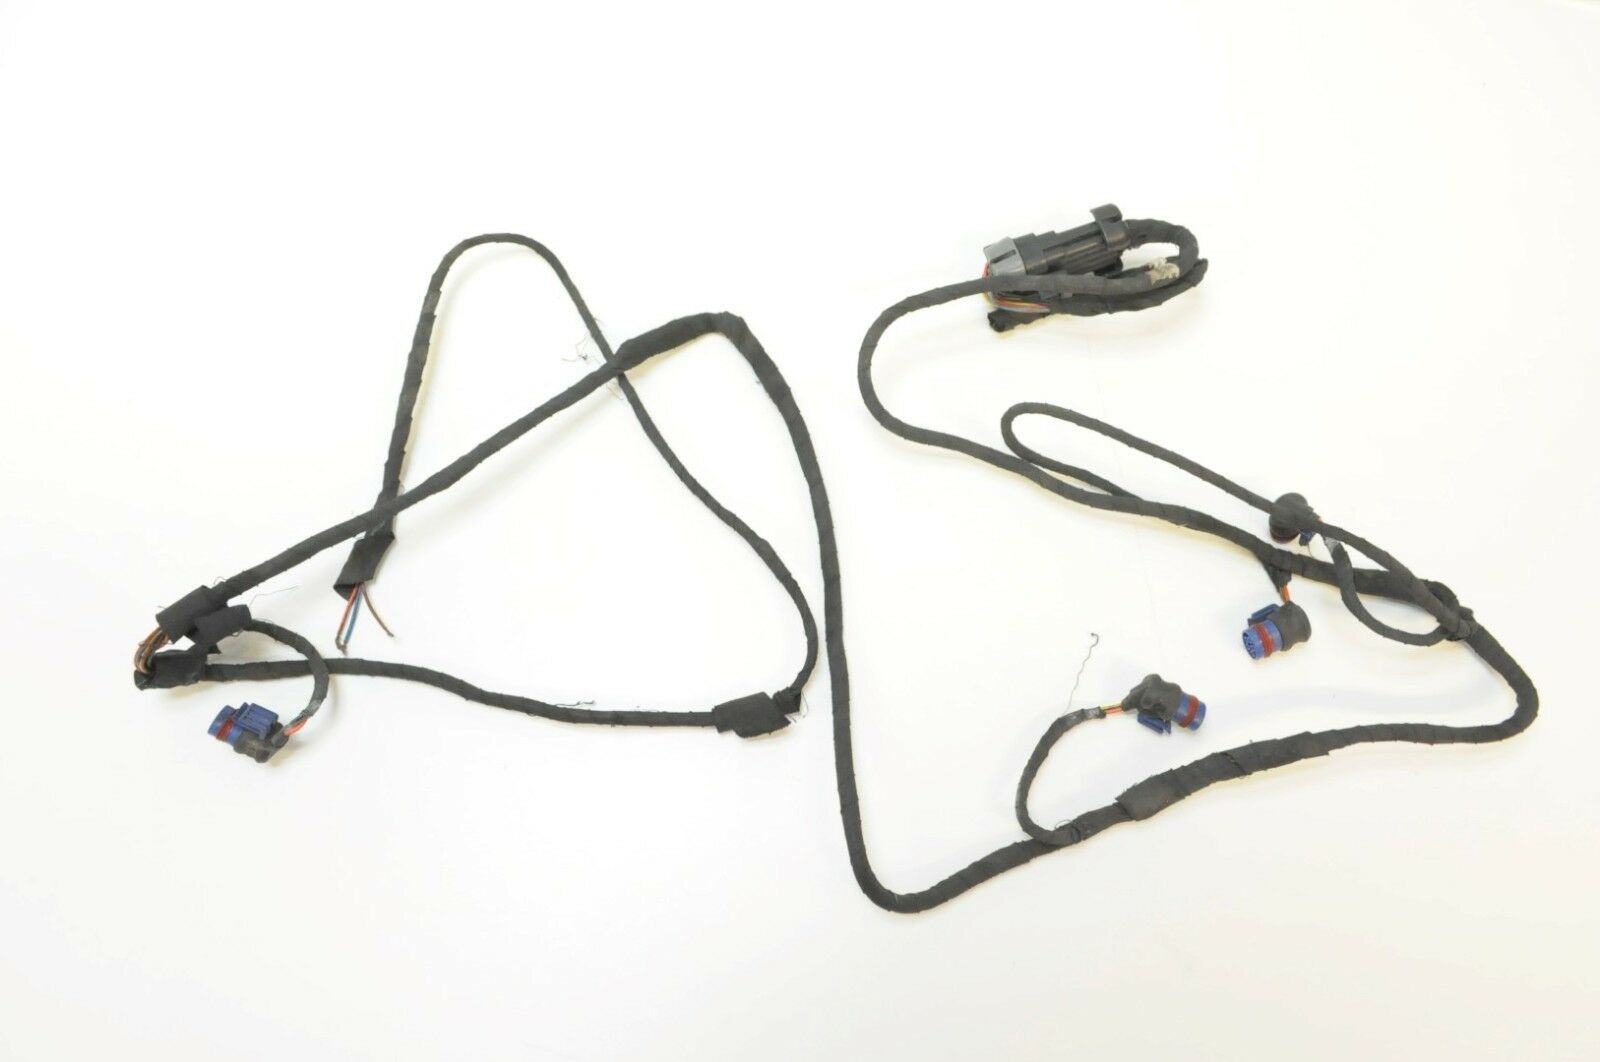 Mercedes C Class W203 2005 Rhd Rear Bumper Parking Sensor Wiring Loom Issues 1 Of 8only Available